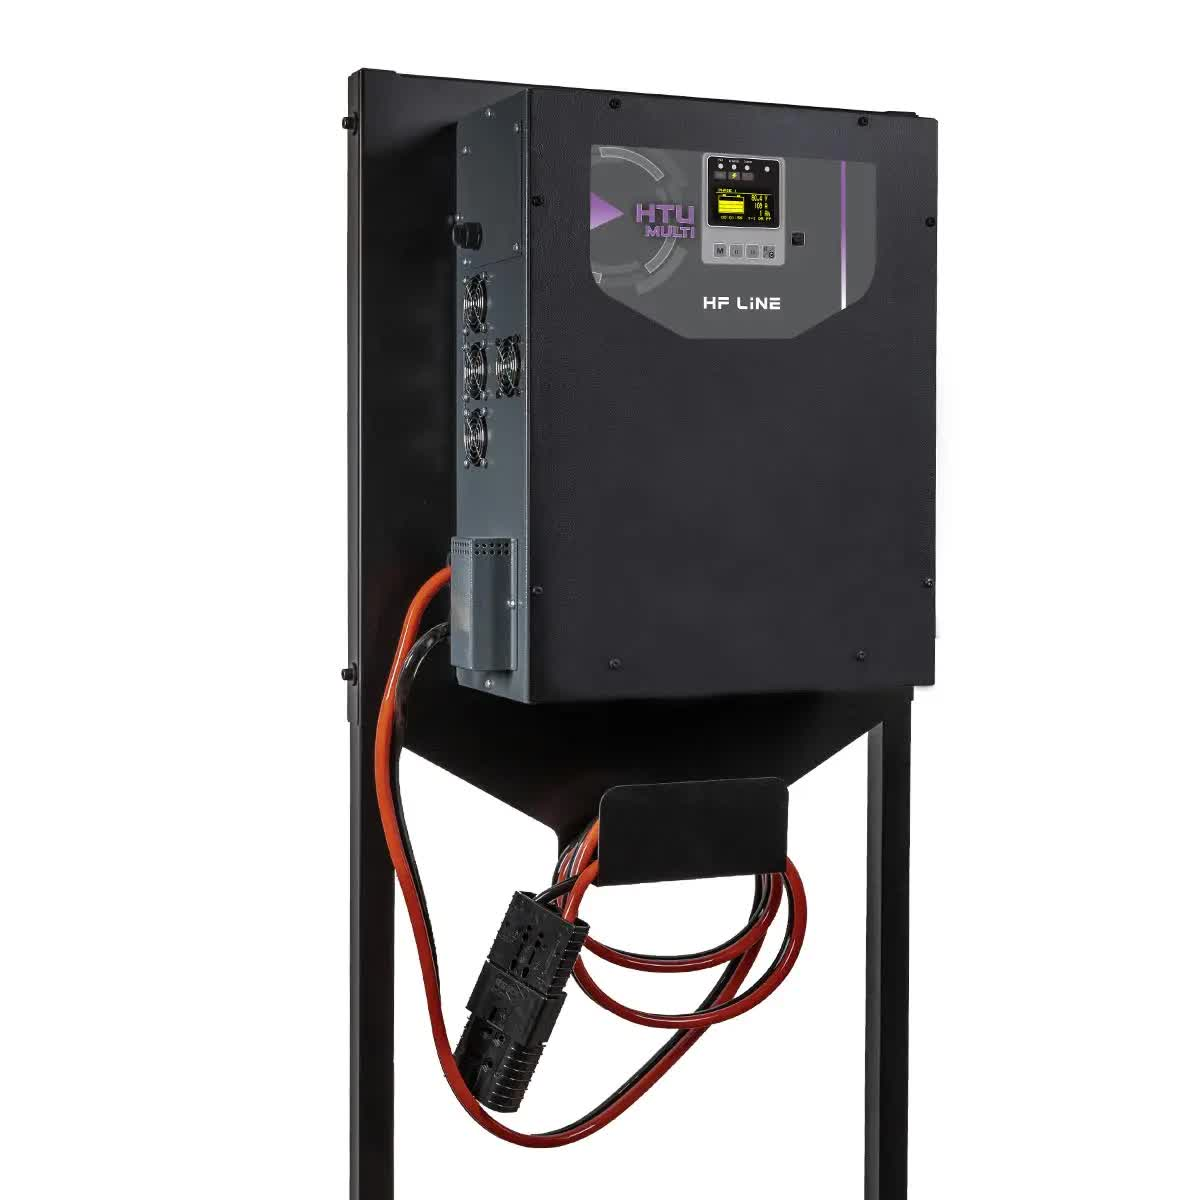 Chargeurs pour Véhicules de Magasinage, Italy, ATIB Elettronica